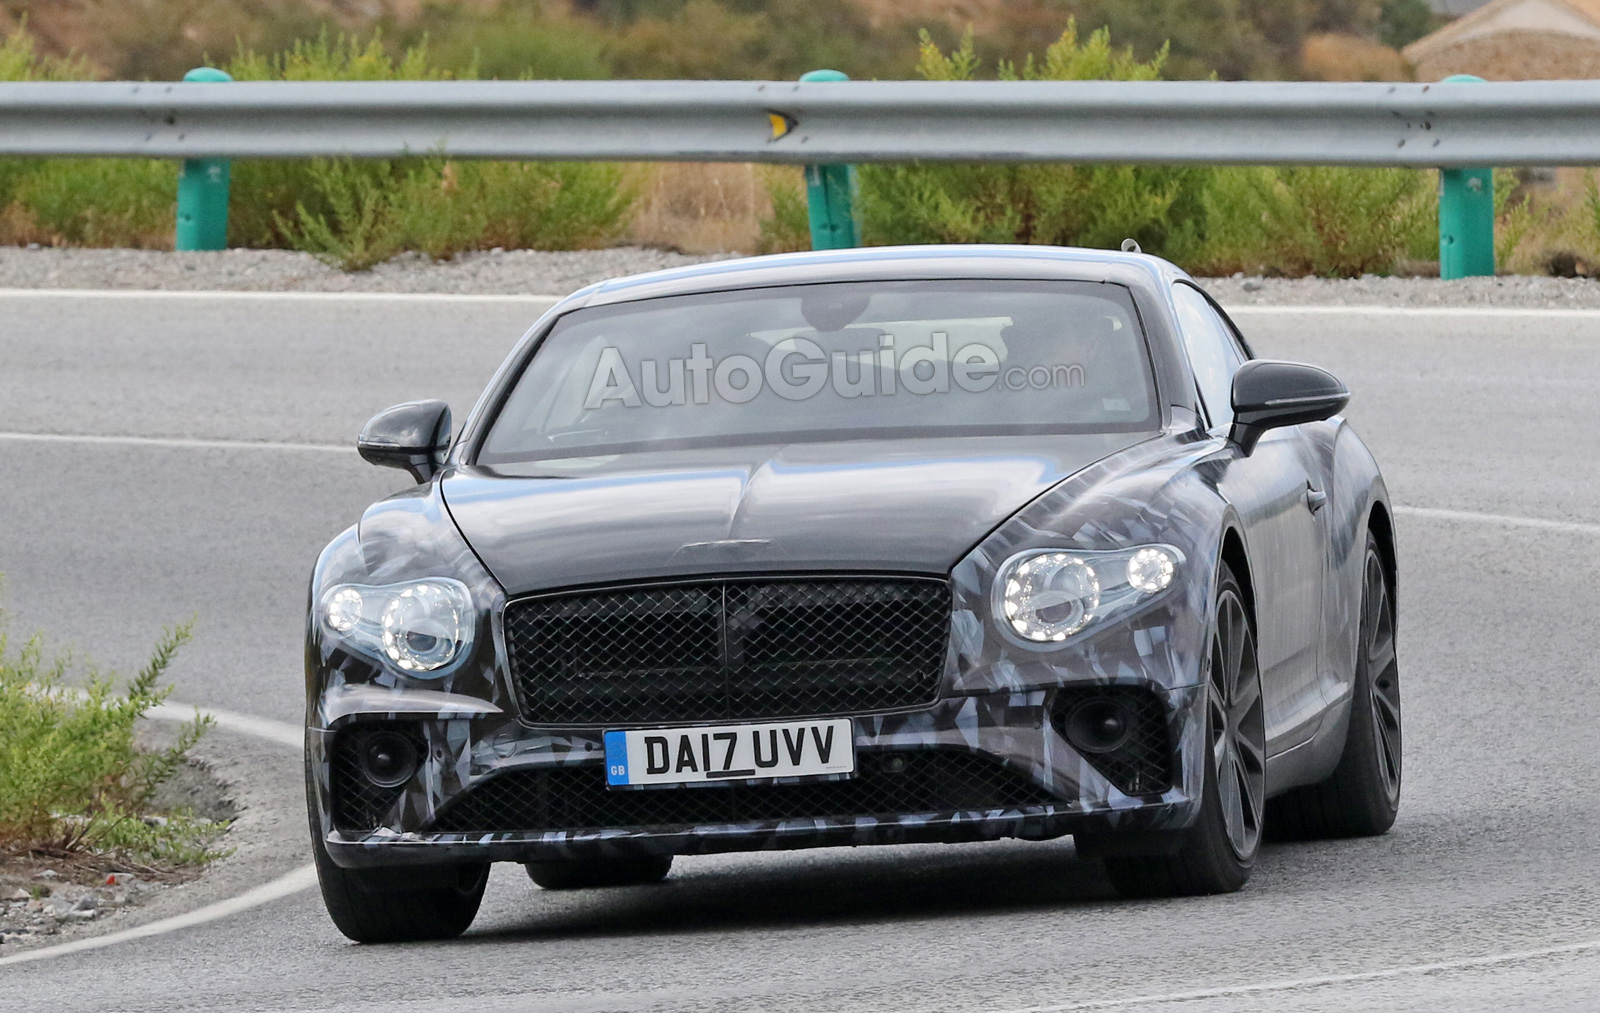 New Bentley Continental GT Showcased Ahead Of Frankfurt Motor Show Debut